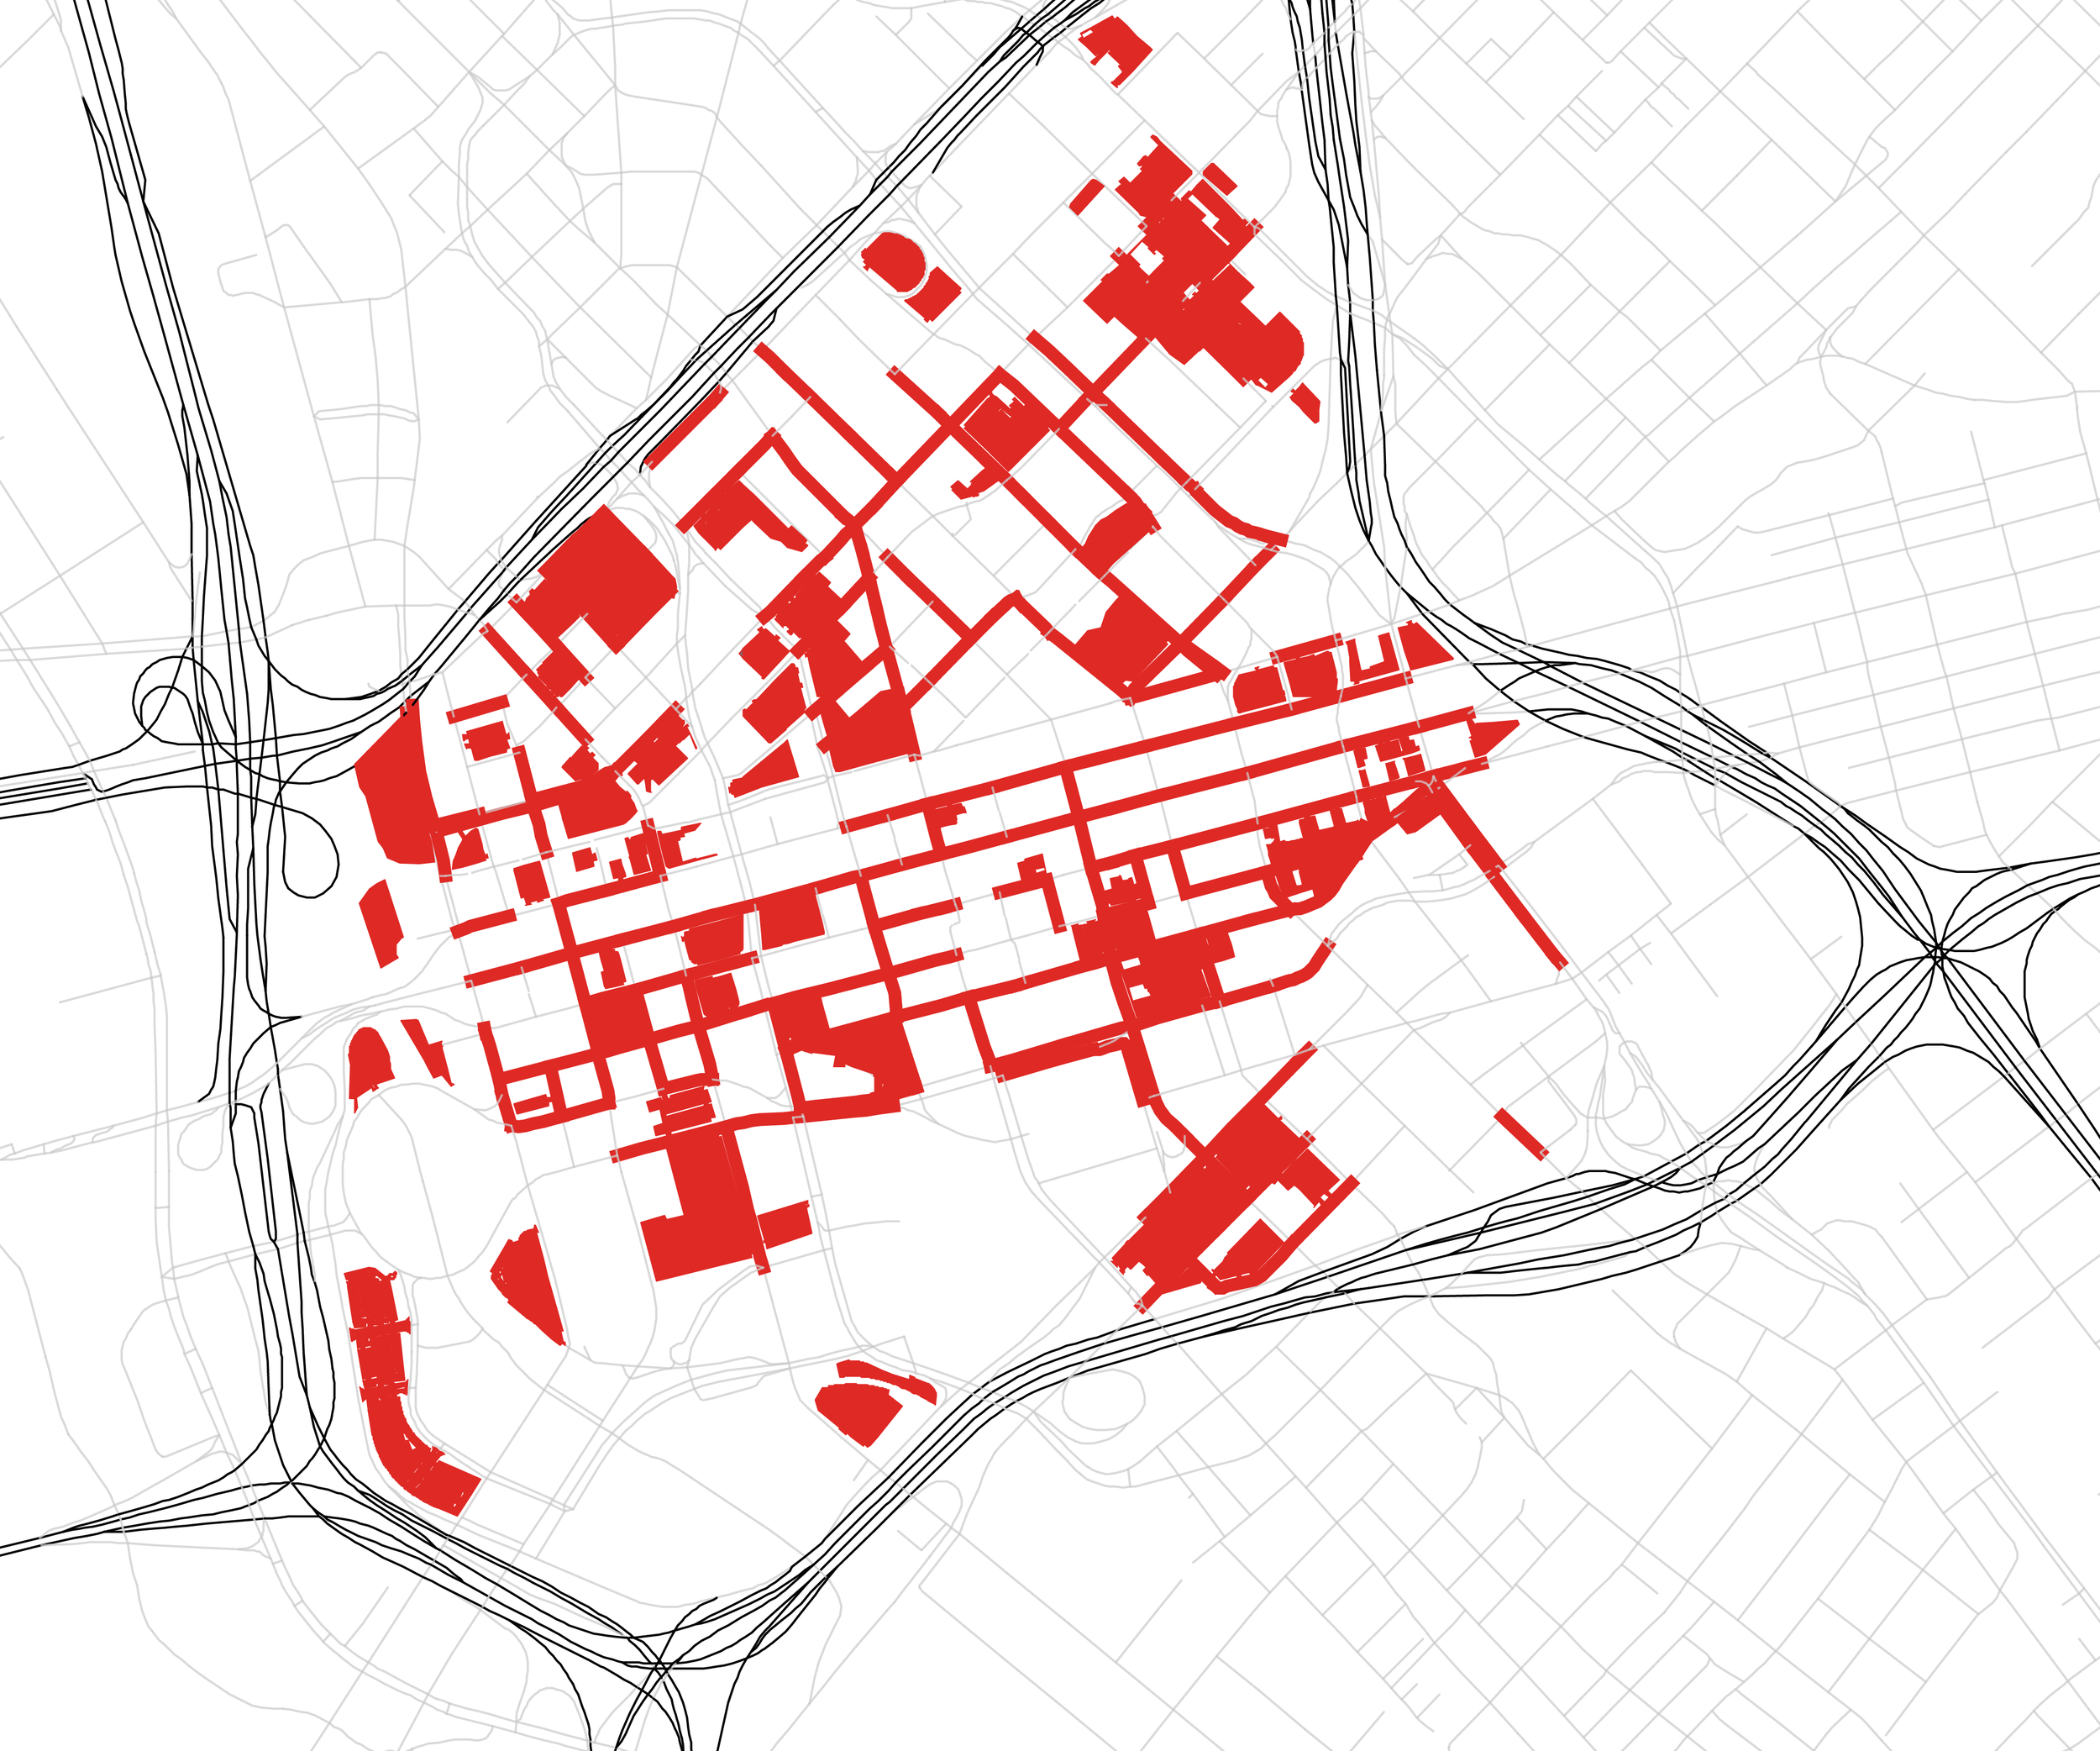 There is a perceived lack of parking (marked in red) in Downtown Dallas.